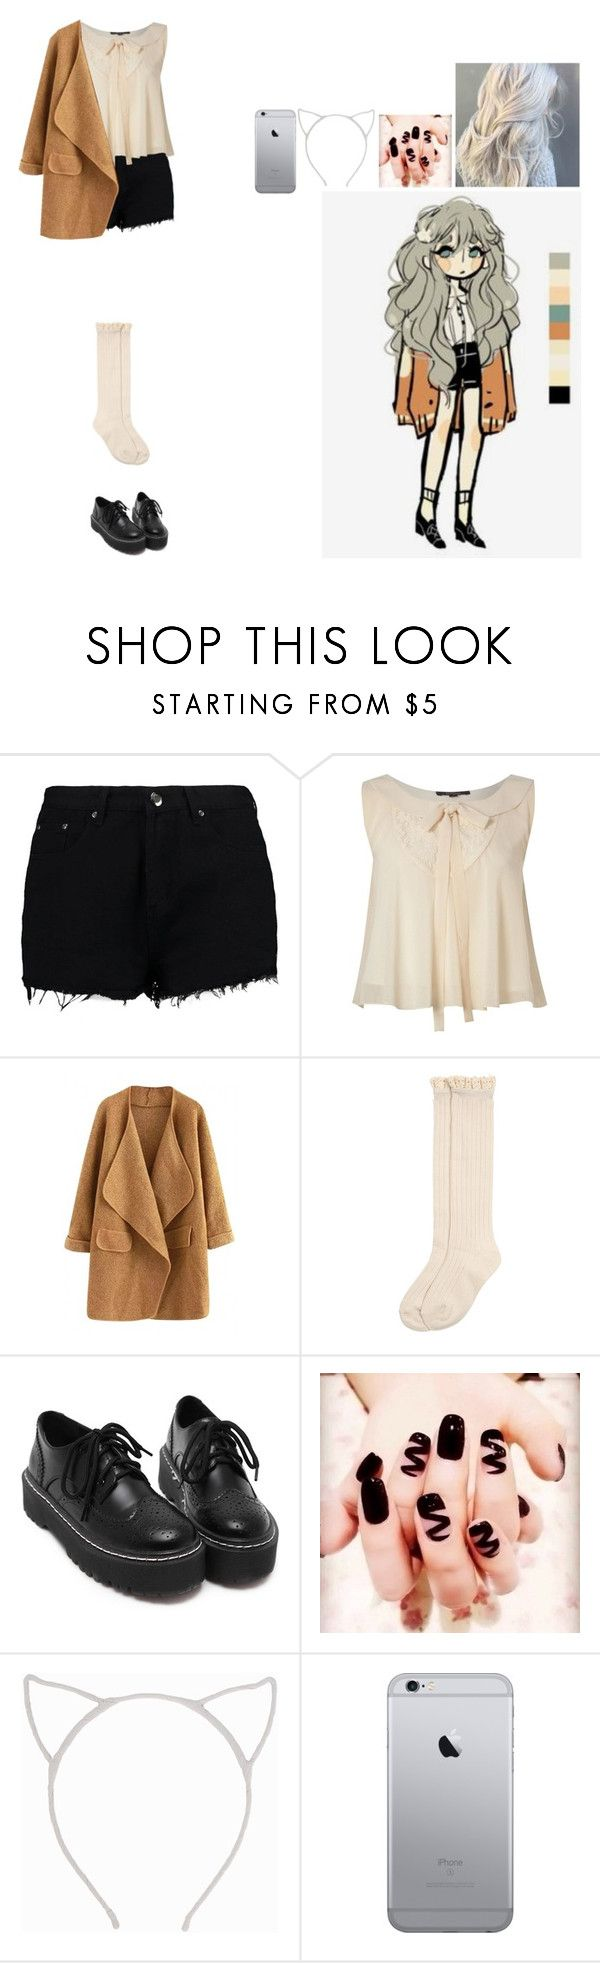 """Glumdrops"" by dreamity ❤ liked on Polyvore featuring Boohoo, Rare London, Monsoon and Pieces"